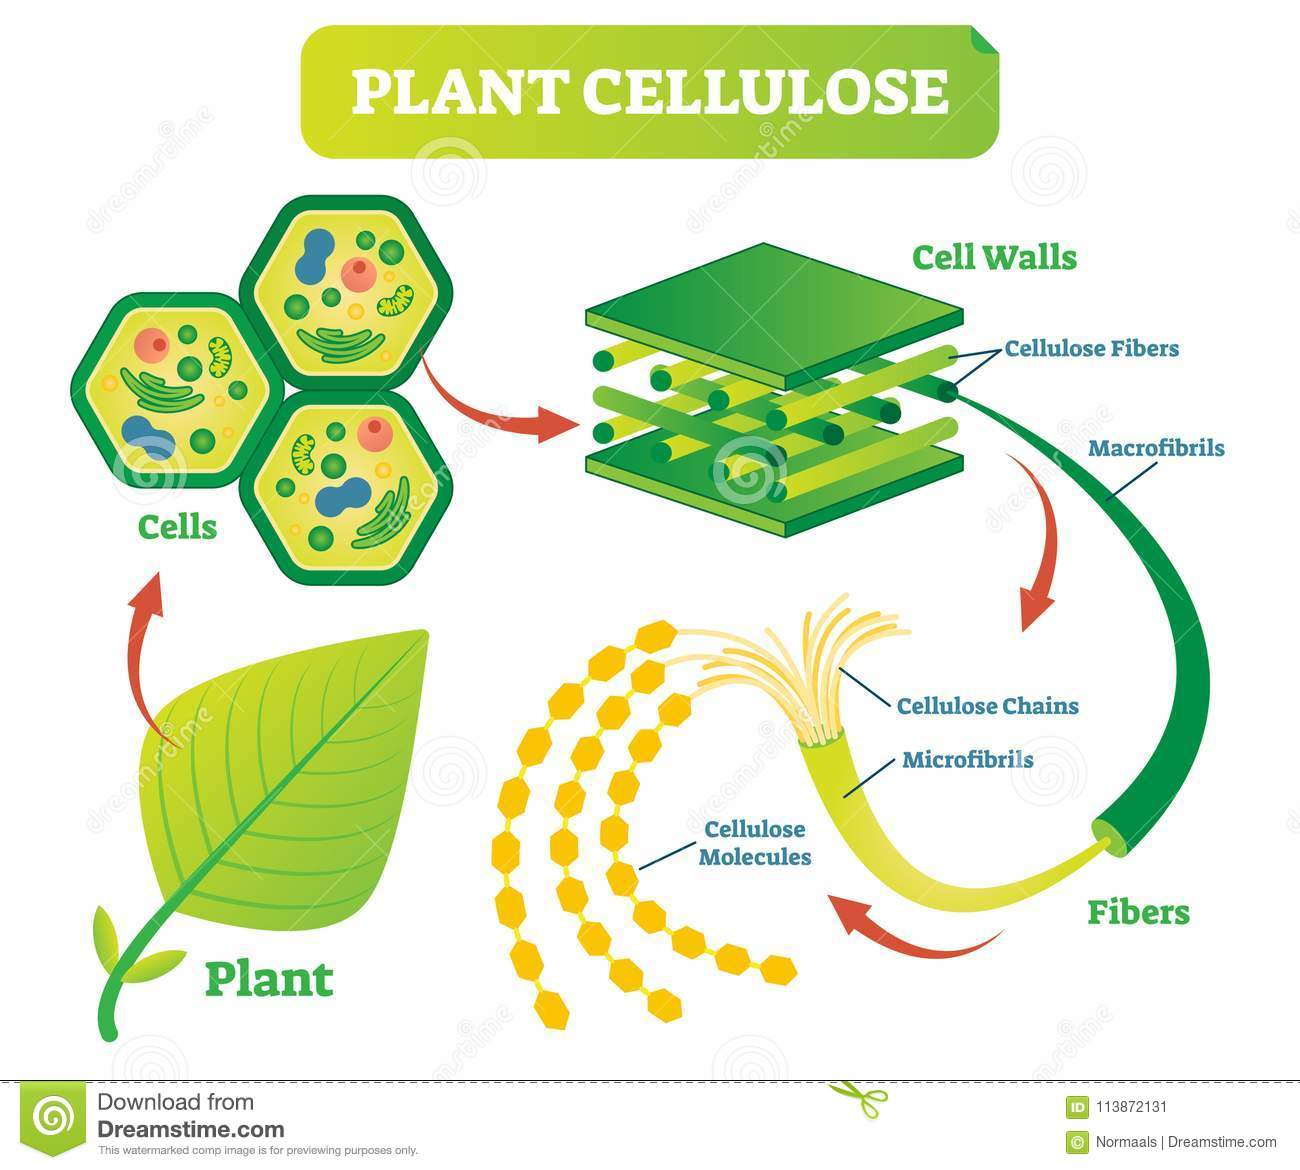 hight resolution of plant cellulose biology vector illustration diagram